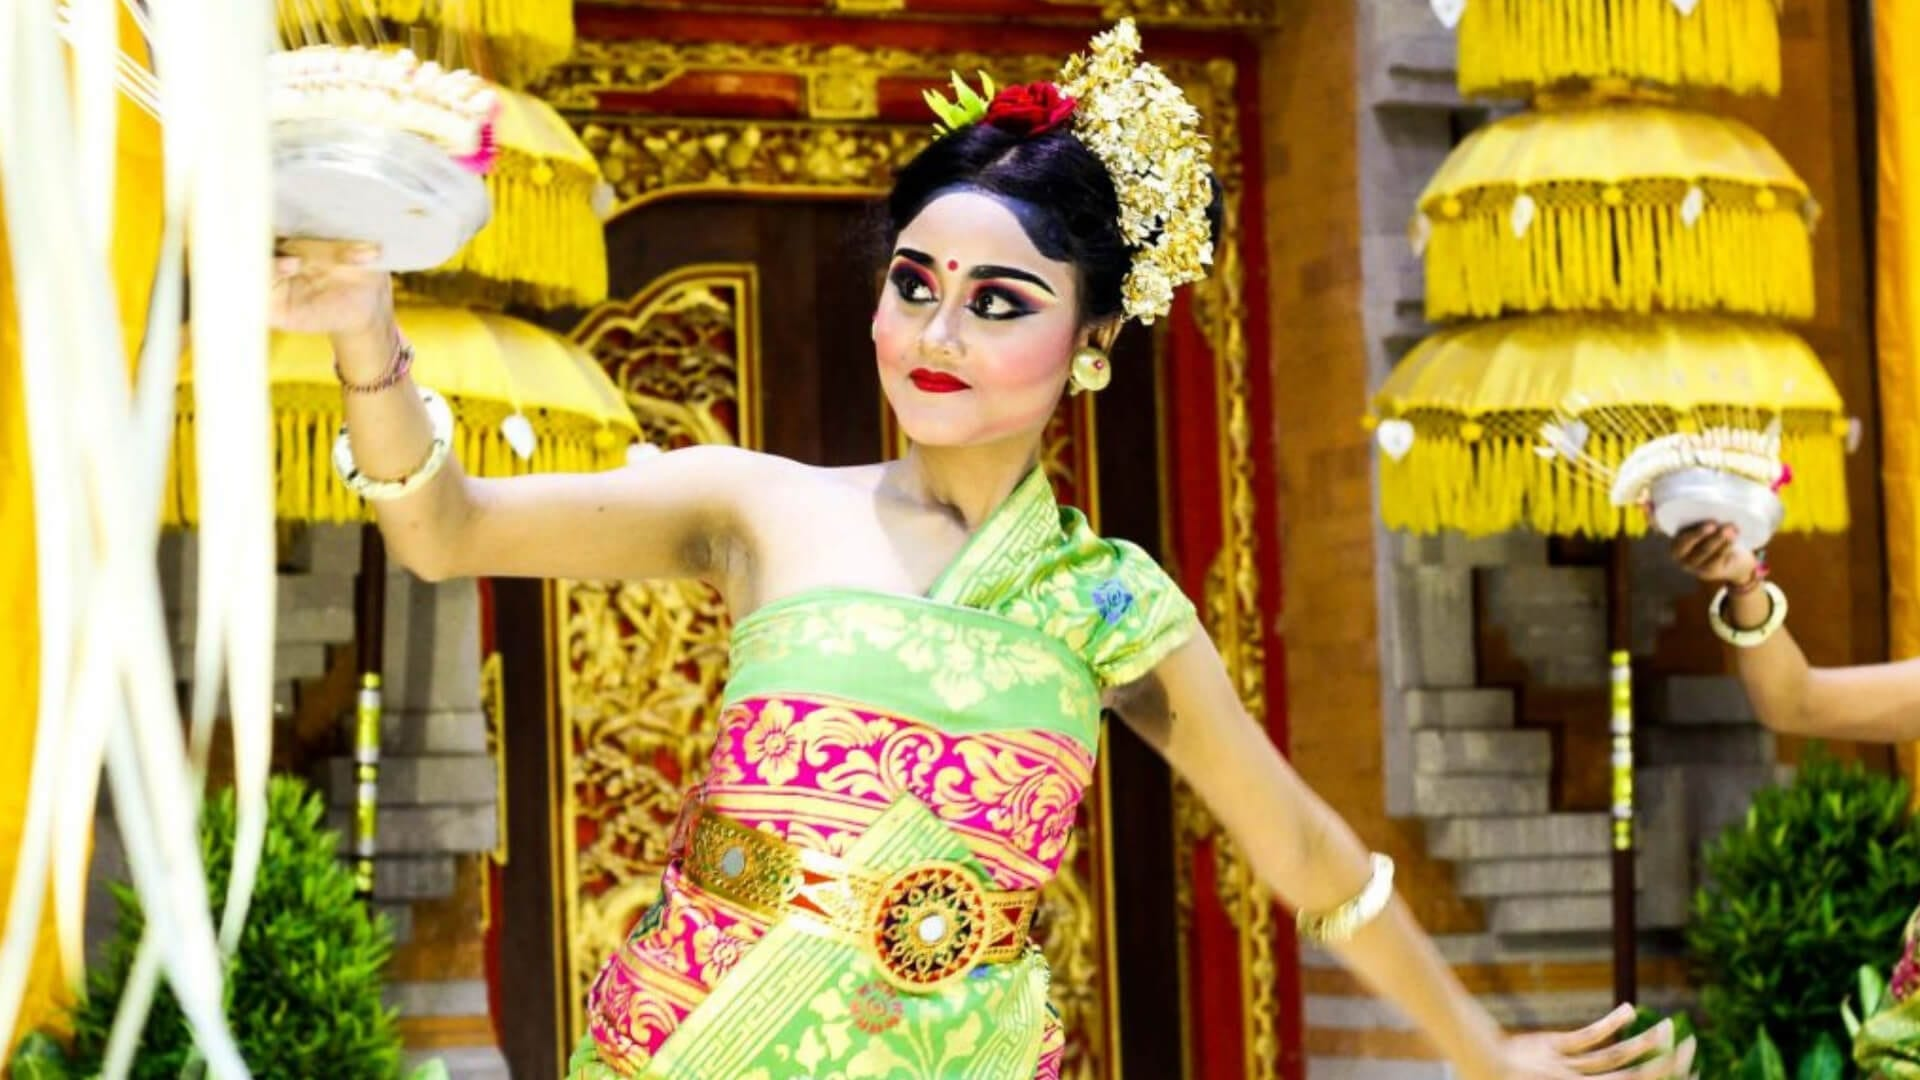 A woman in Balinese traditional clothes is dancing in front of a temple in Bali.